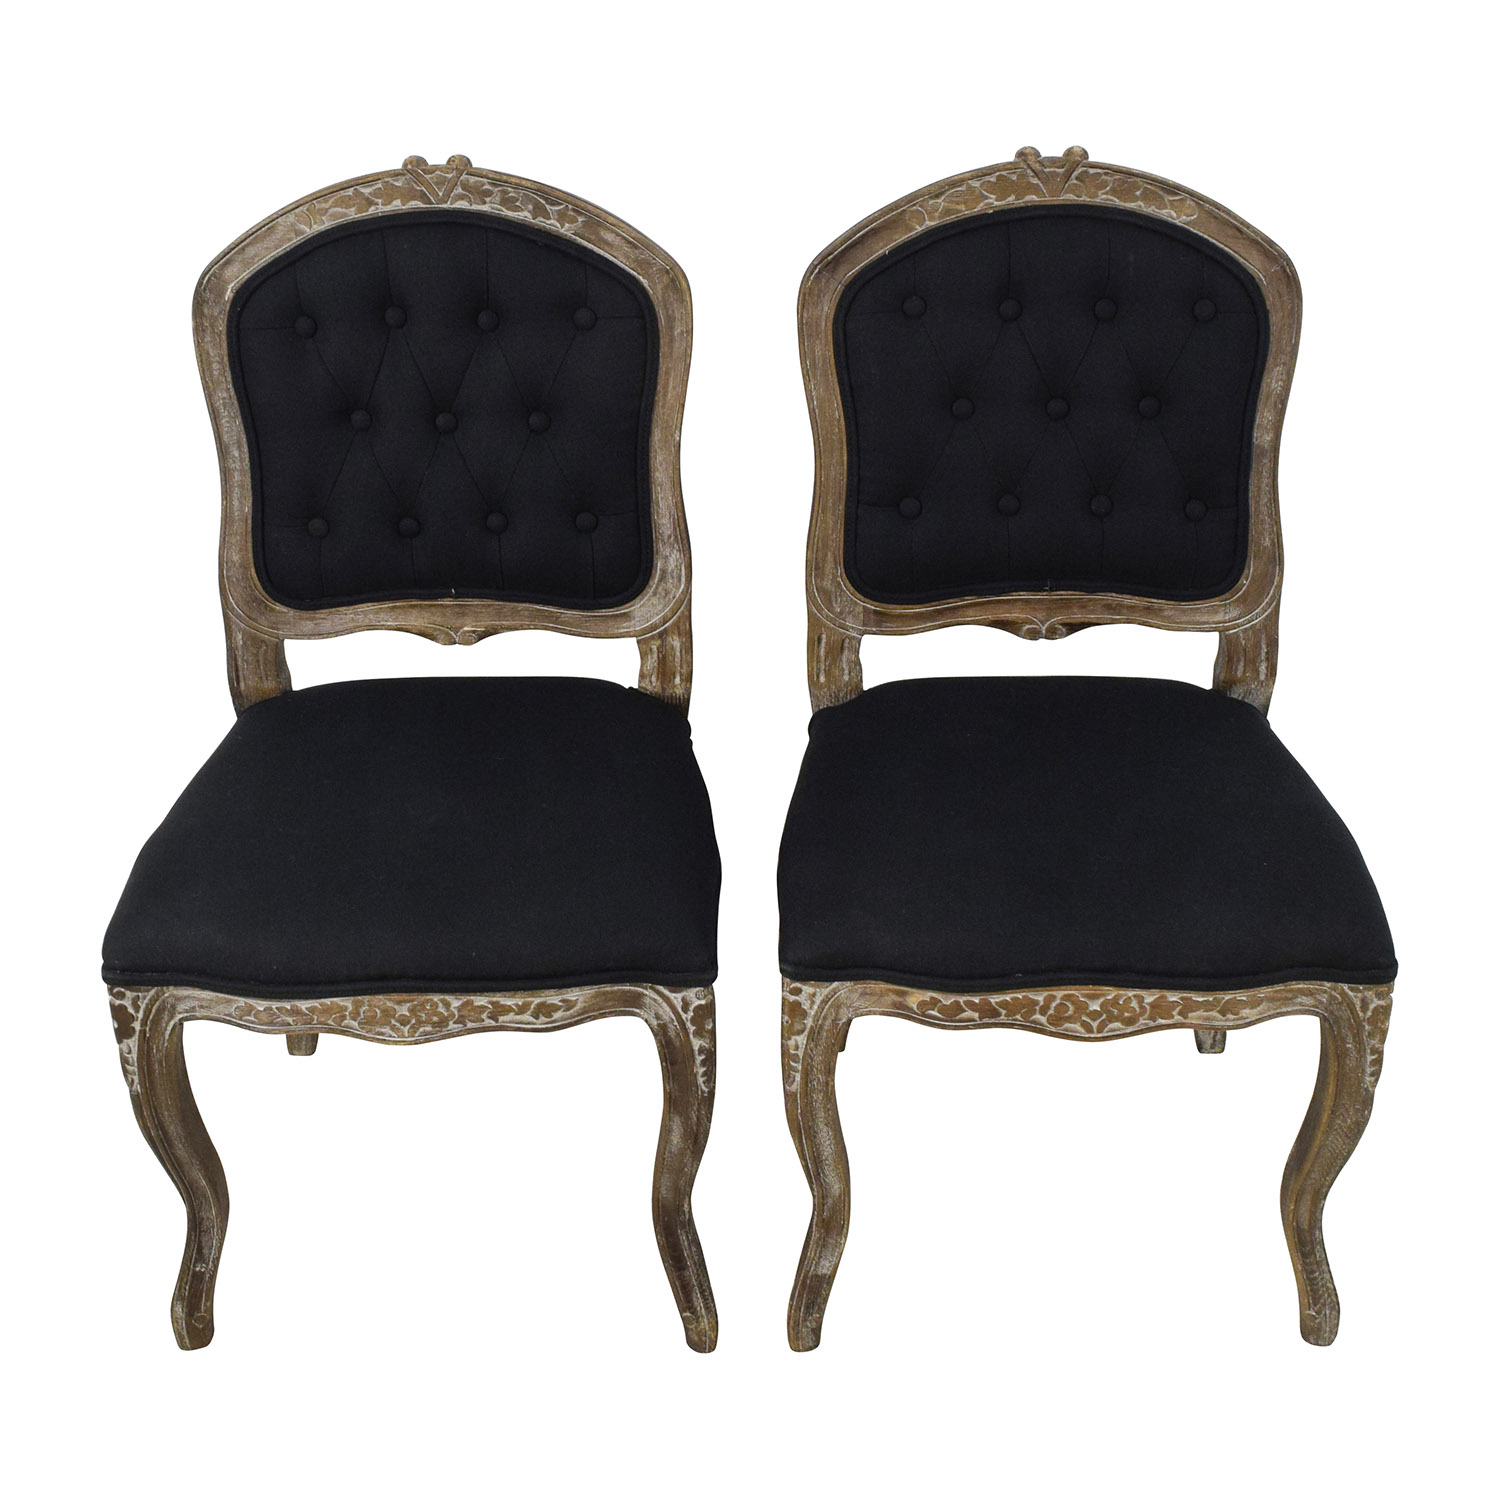 Safavieh Safavieh Carissa Country French Brown Tufted Chairs used